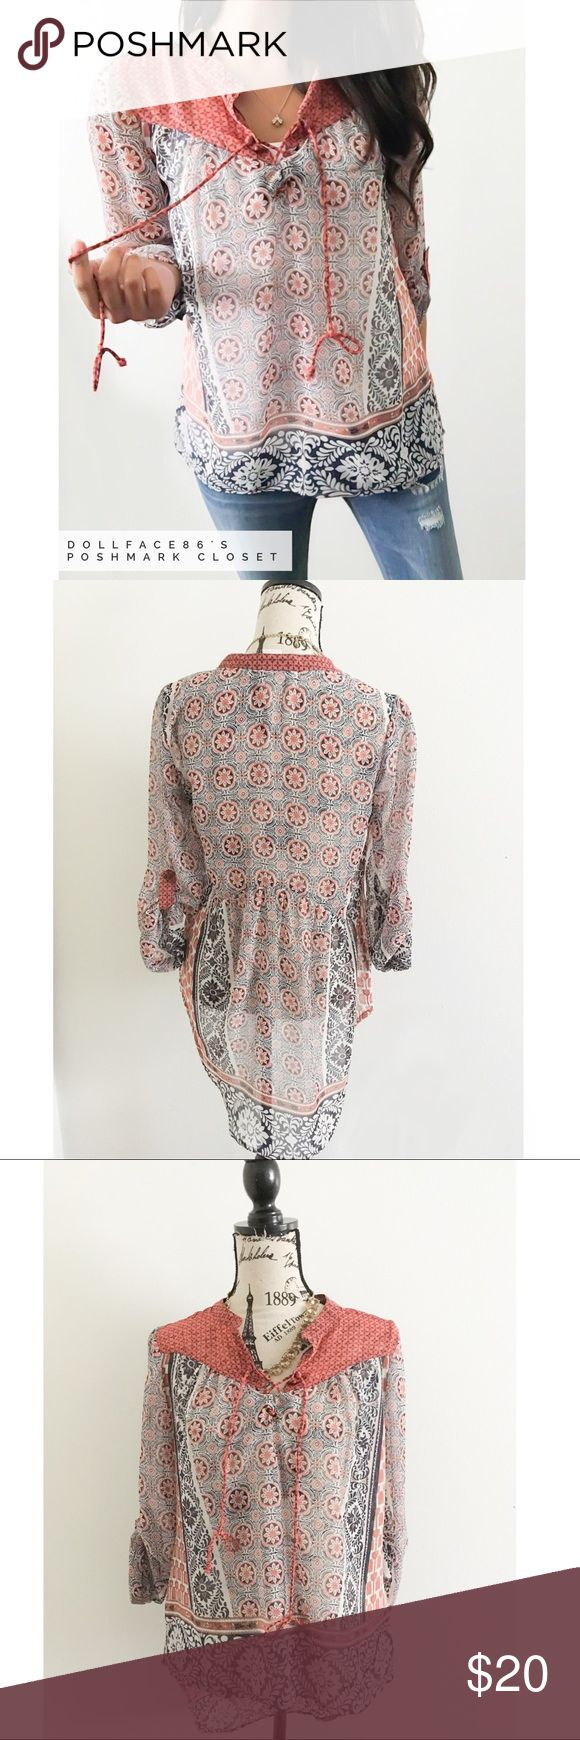 """Boho Lace Up Semi Sheer Blouse ✦   ✦{I am not a professional photographer, actual color of item may vary ➾slightly from pics}  ❥chest:19.5"""" ❥waist:19"""" ❥length:24""""32.5"""" ❥sleeves:25"""" ➳material/care:polyester/machine wash  ➳fit:true  ➳condition:has wear on lace up collar   ✦20% off bundles of 3/more items ✦No Trades  ✦NO HOLDS ✦No transactions outside Poshmark  ✦No lowball offers/sales are final American Rag Tops Blouses"""